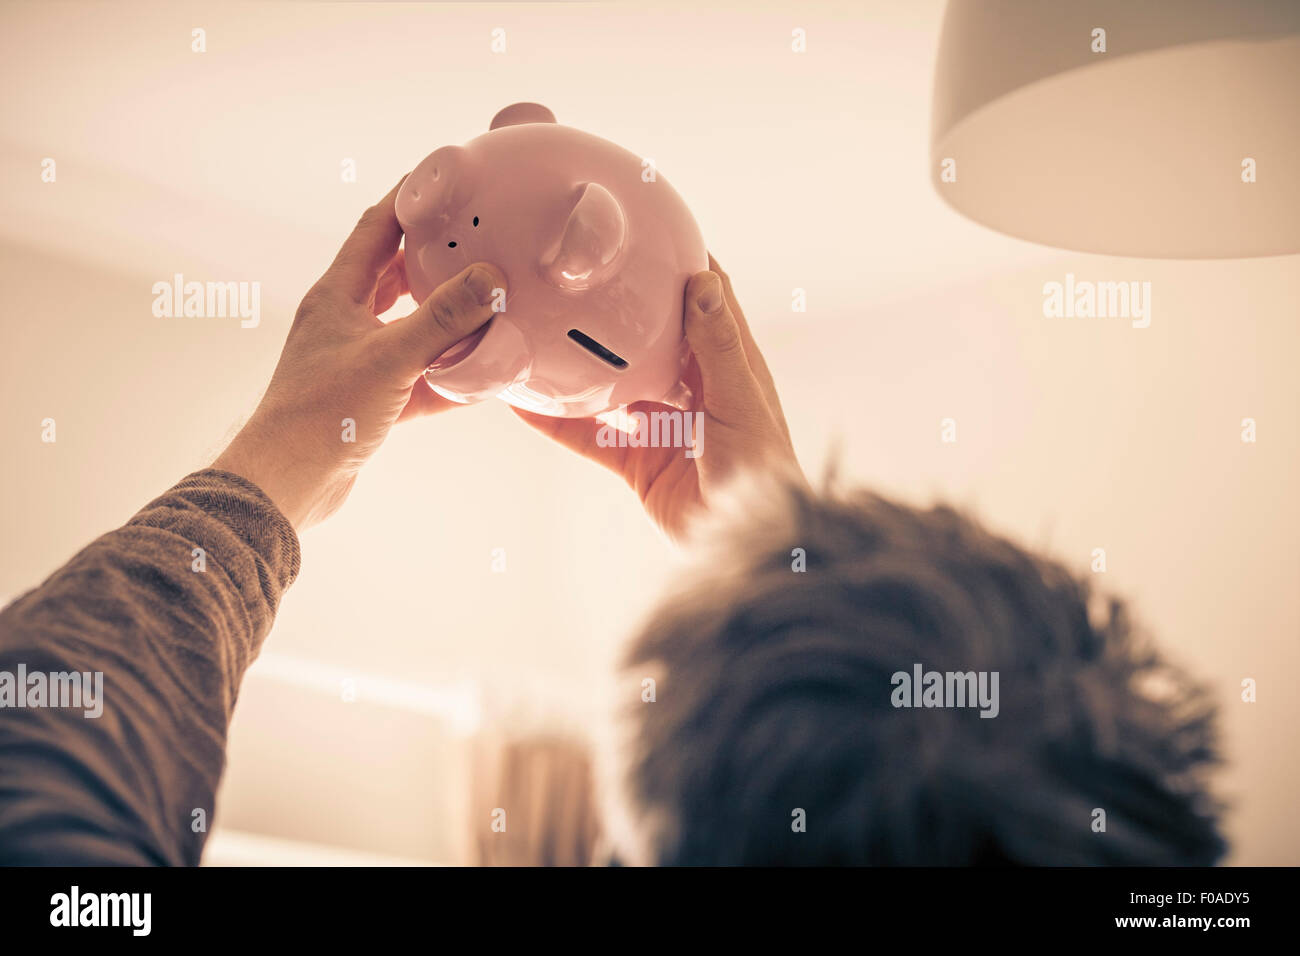 Man looking up at piggy bank - Stock Image